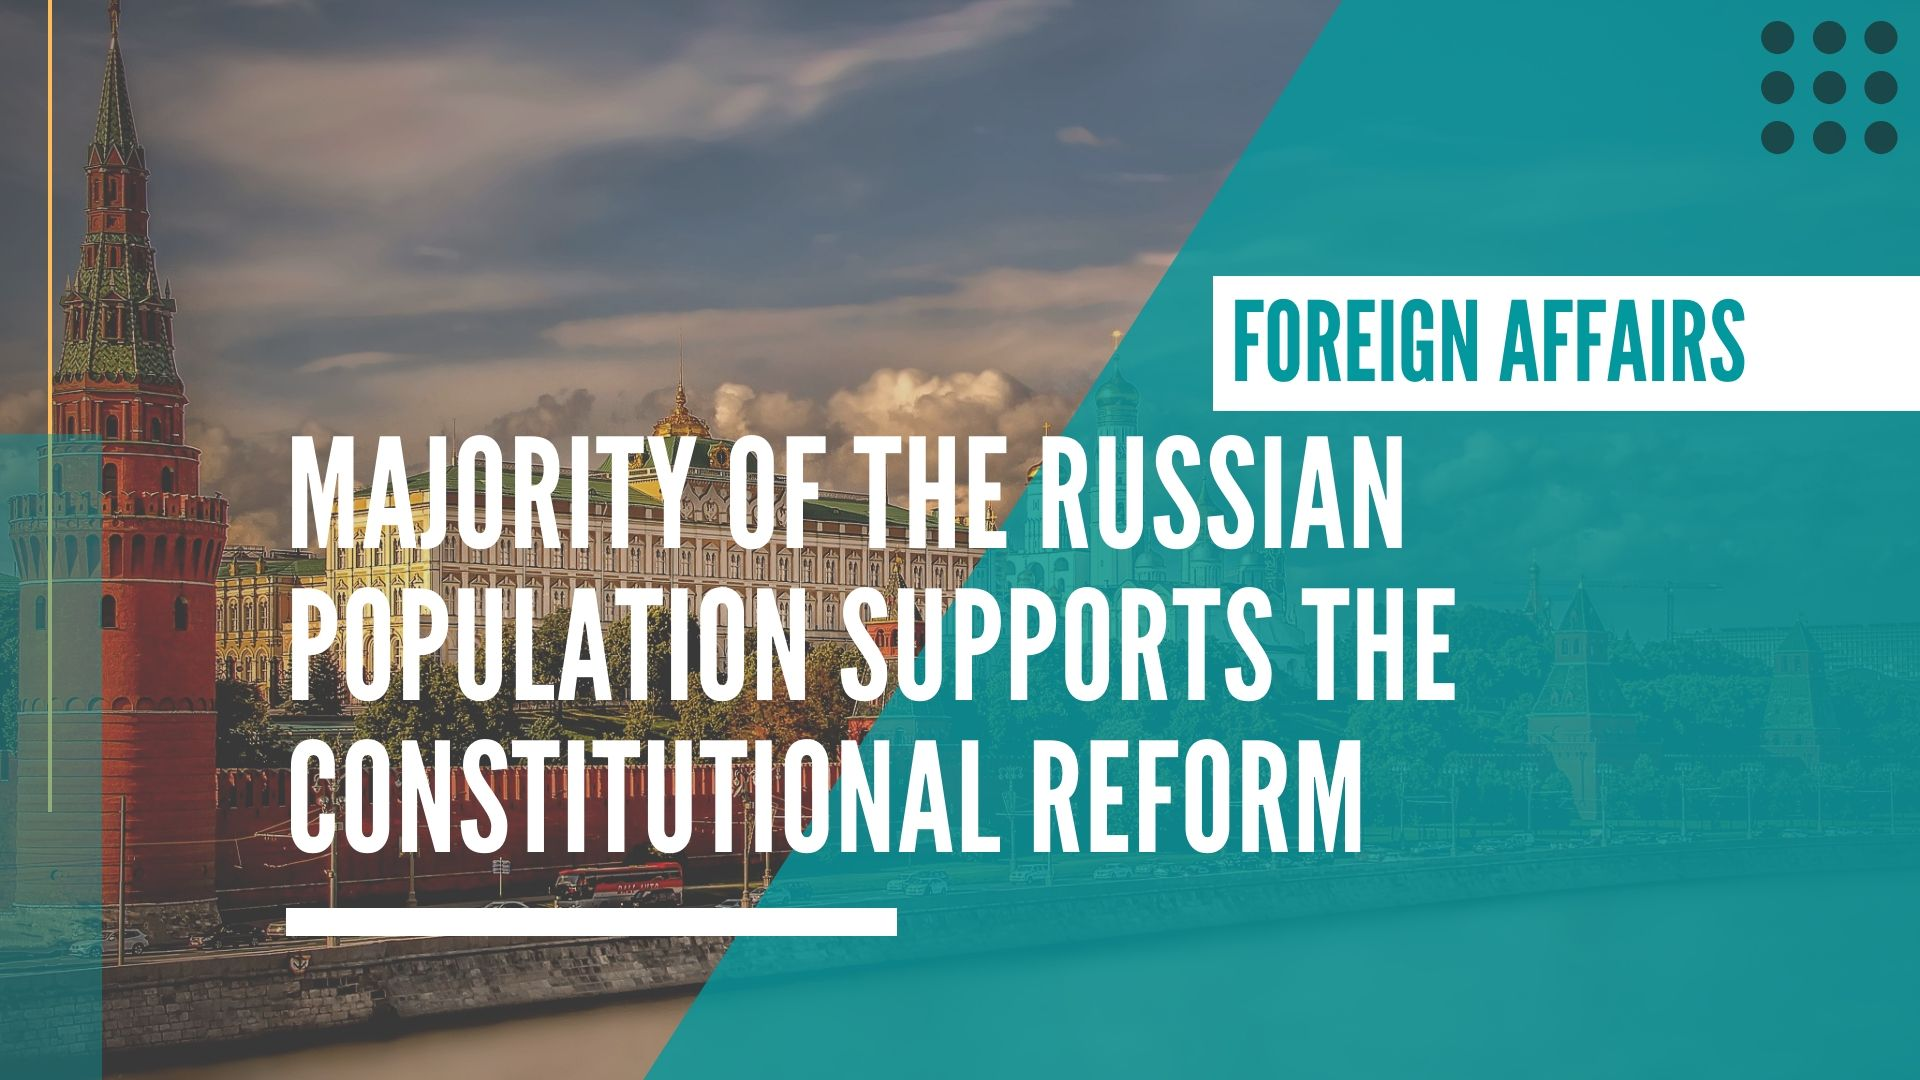 Majority of the Russian population supports the Constitutional Reform